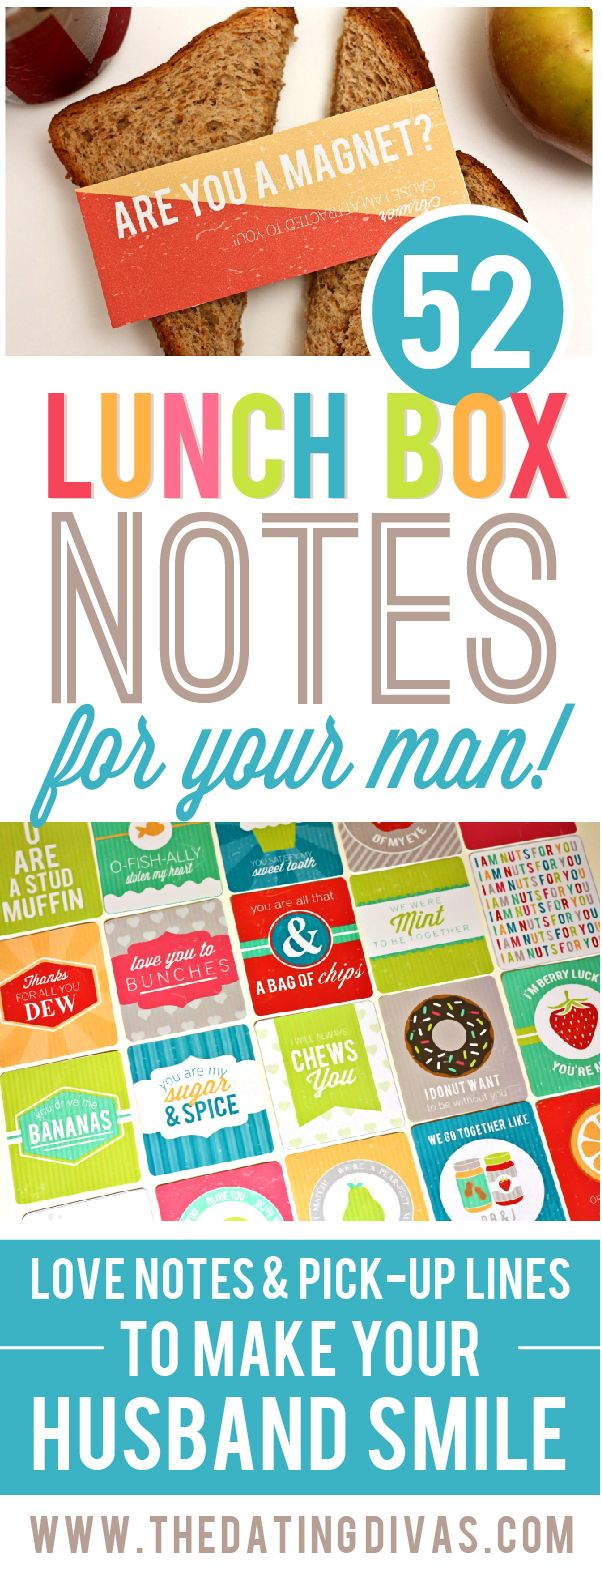 Wish I could see my hubby's face when he reads these! www.TheDatingDivas.com